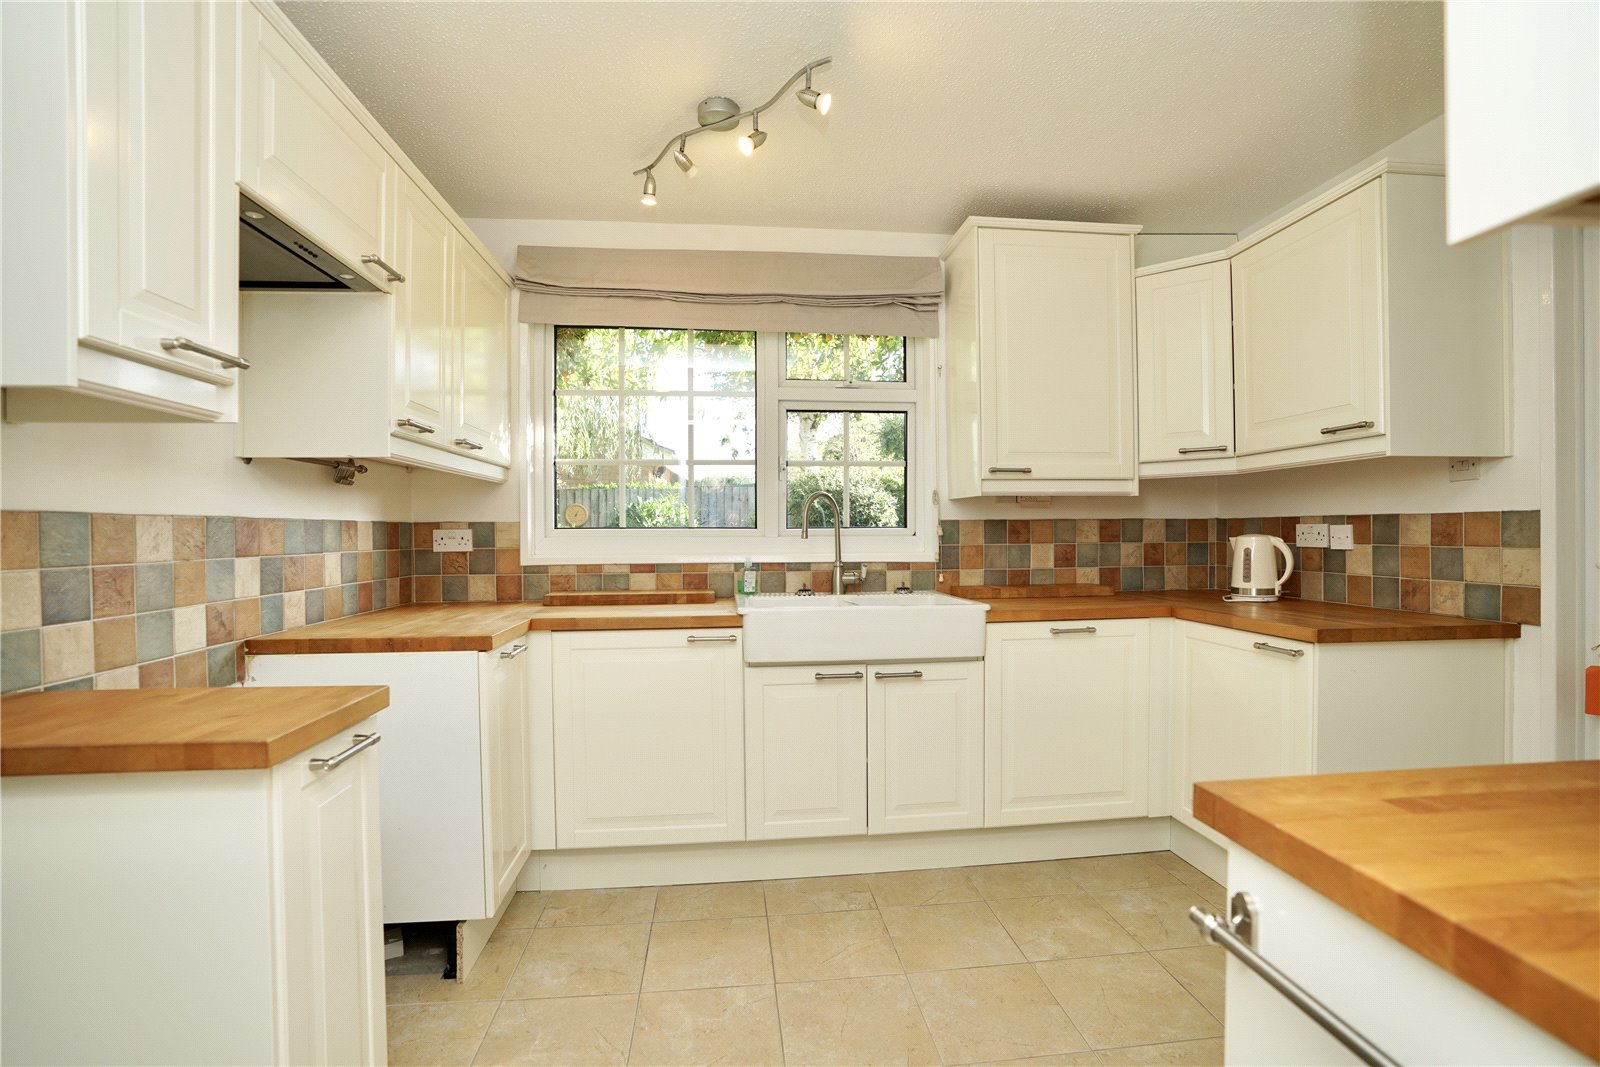 4 bed house for sale in All Hallows, Sandy  - Property Image 6